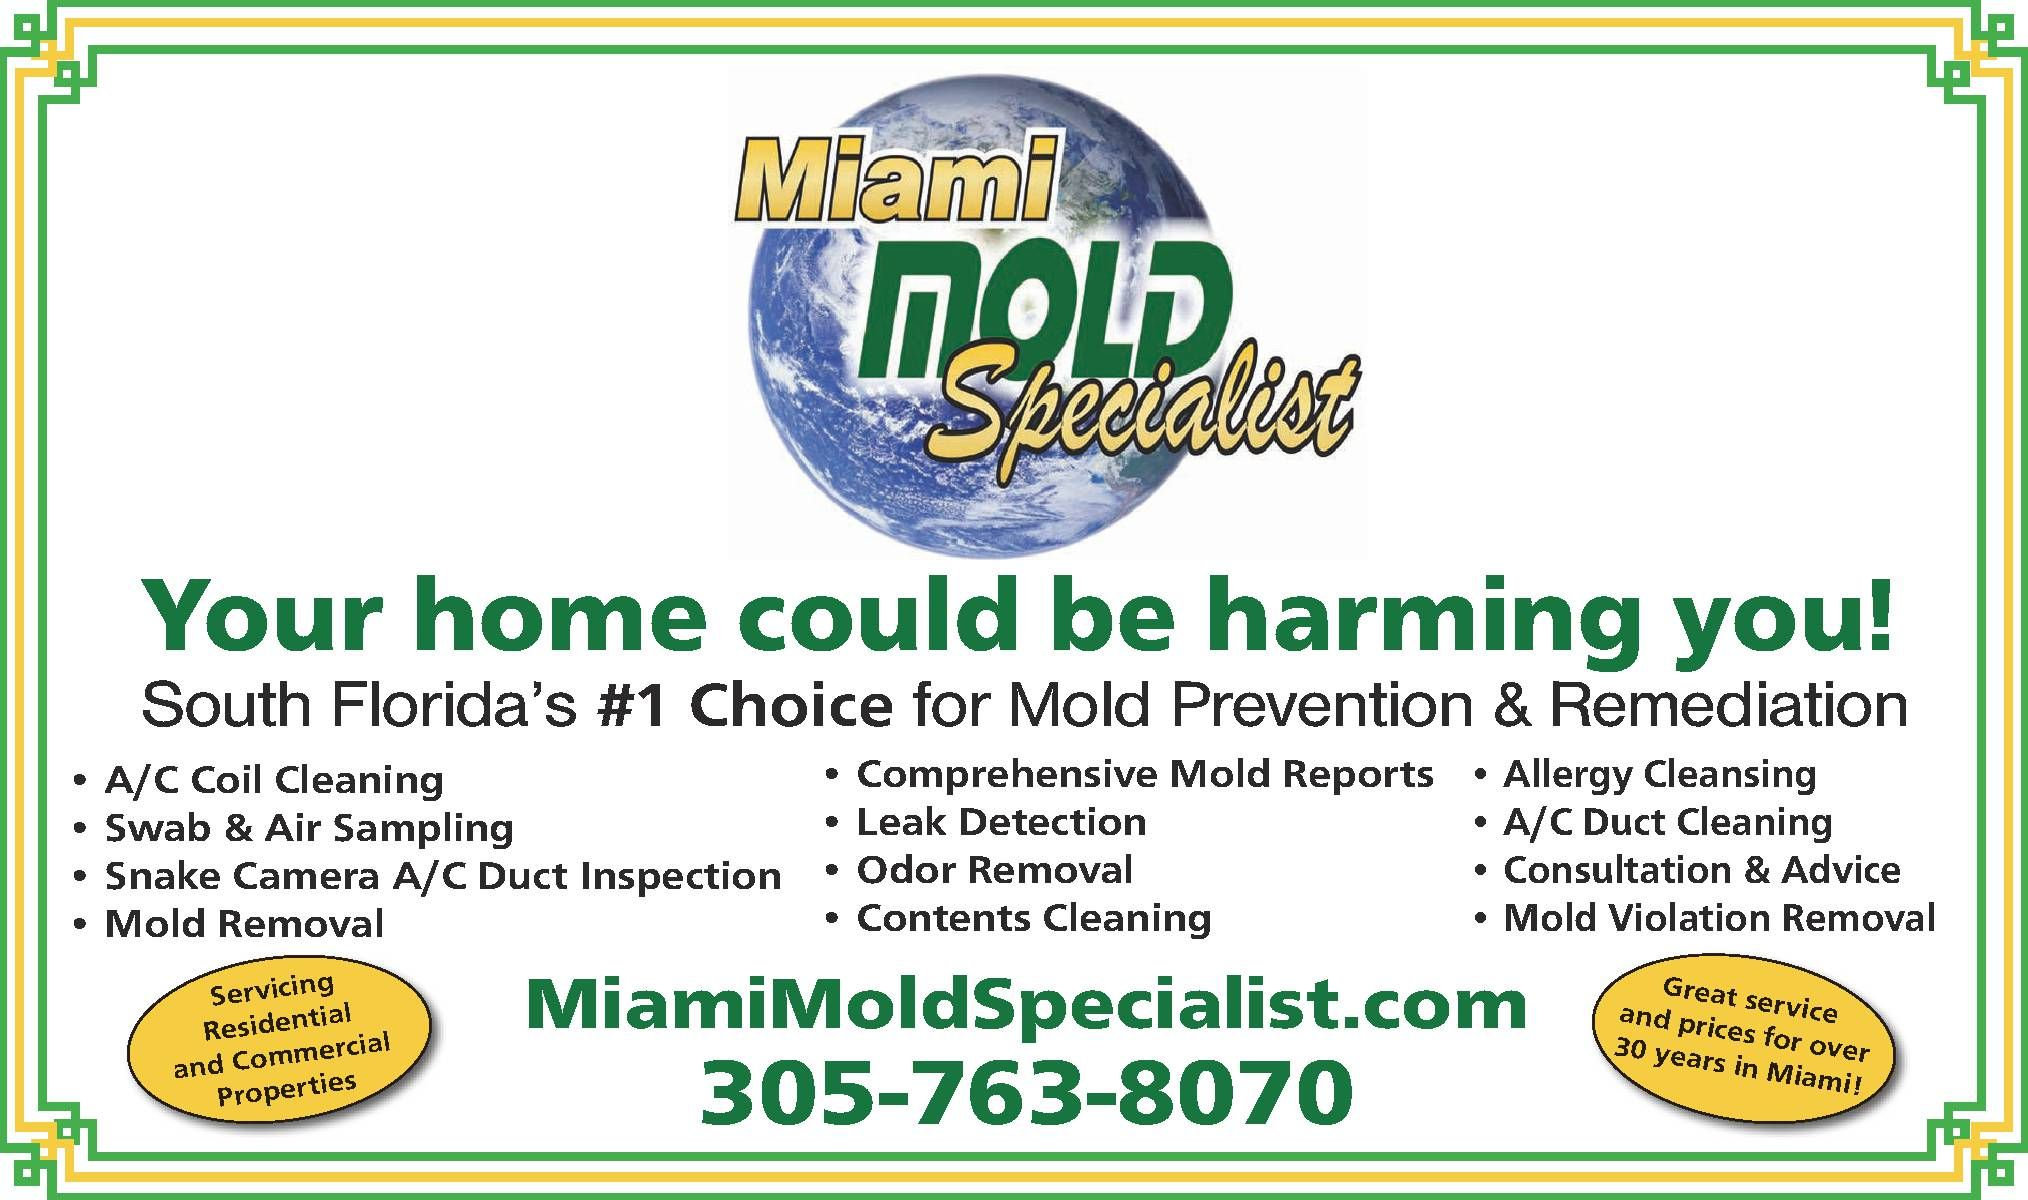 The mission of the Miami Mold Specialist is to provide